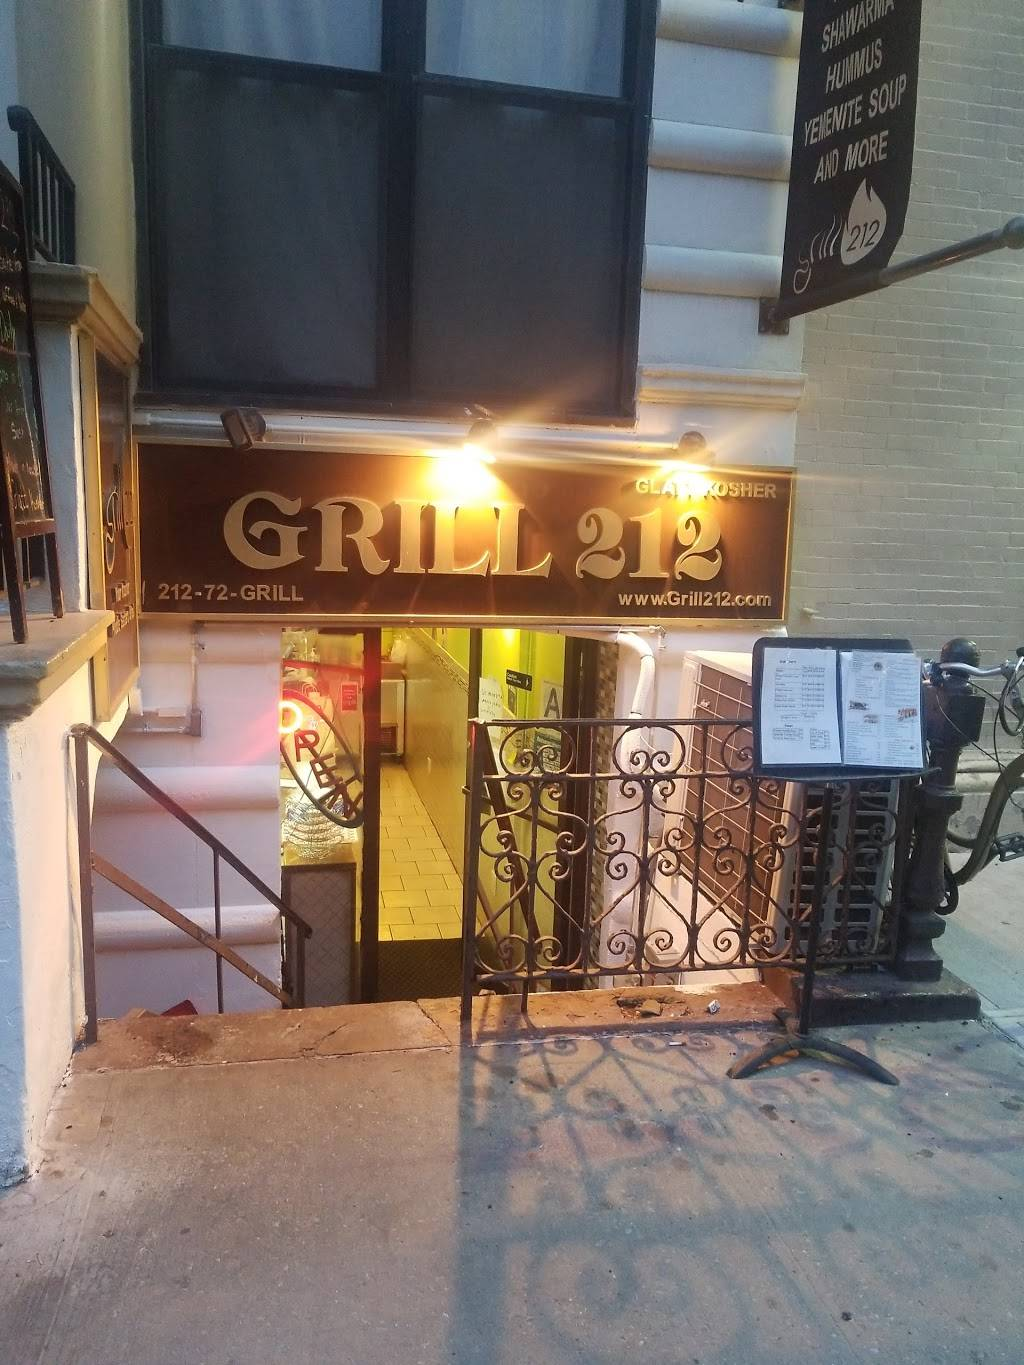 Grill 212 | restaurant | 212 W 80th St, New York, NY 10024, USA | 2127247455 OR +1 212-724-7455